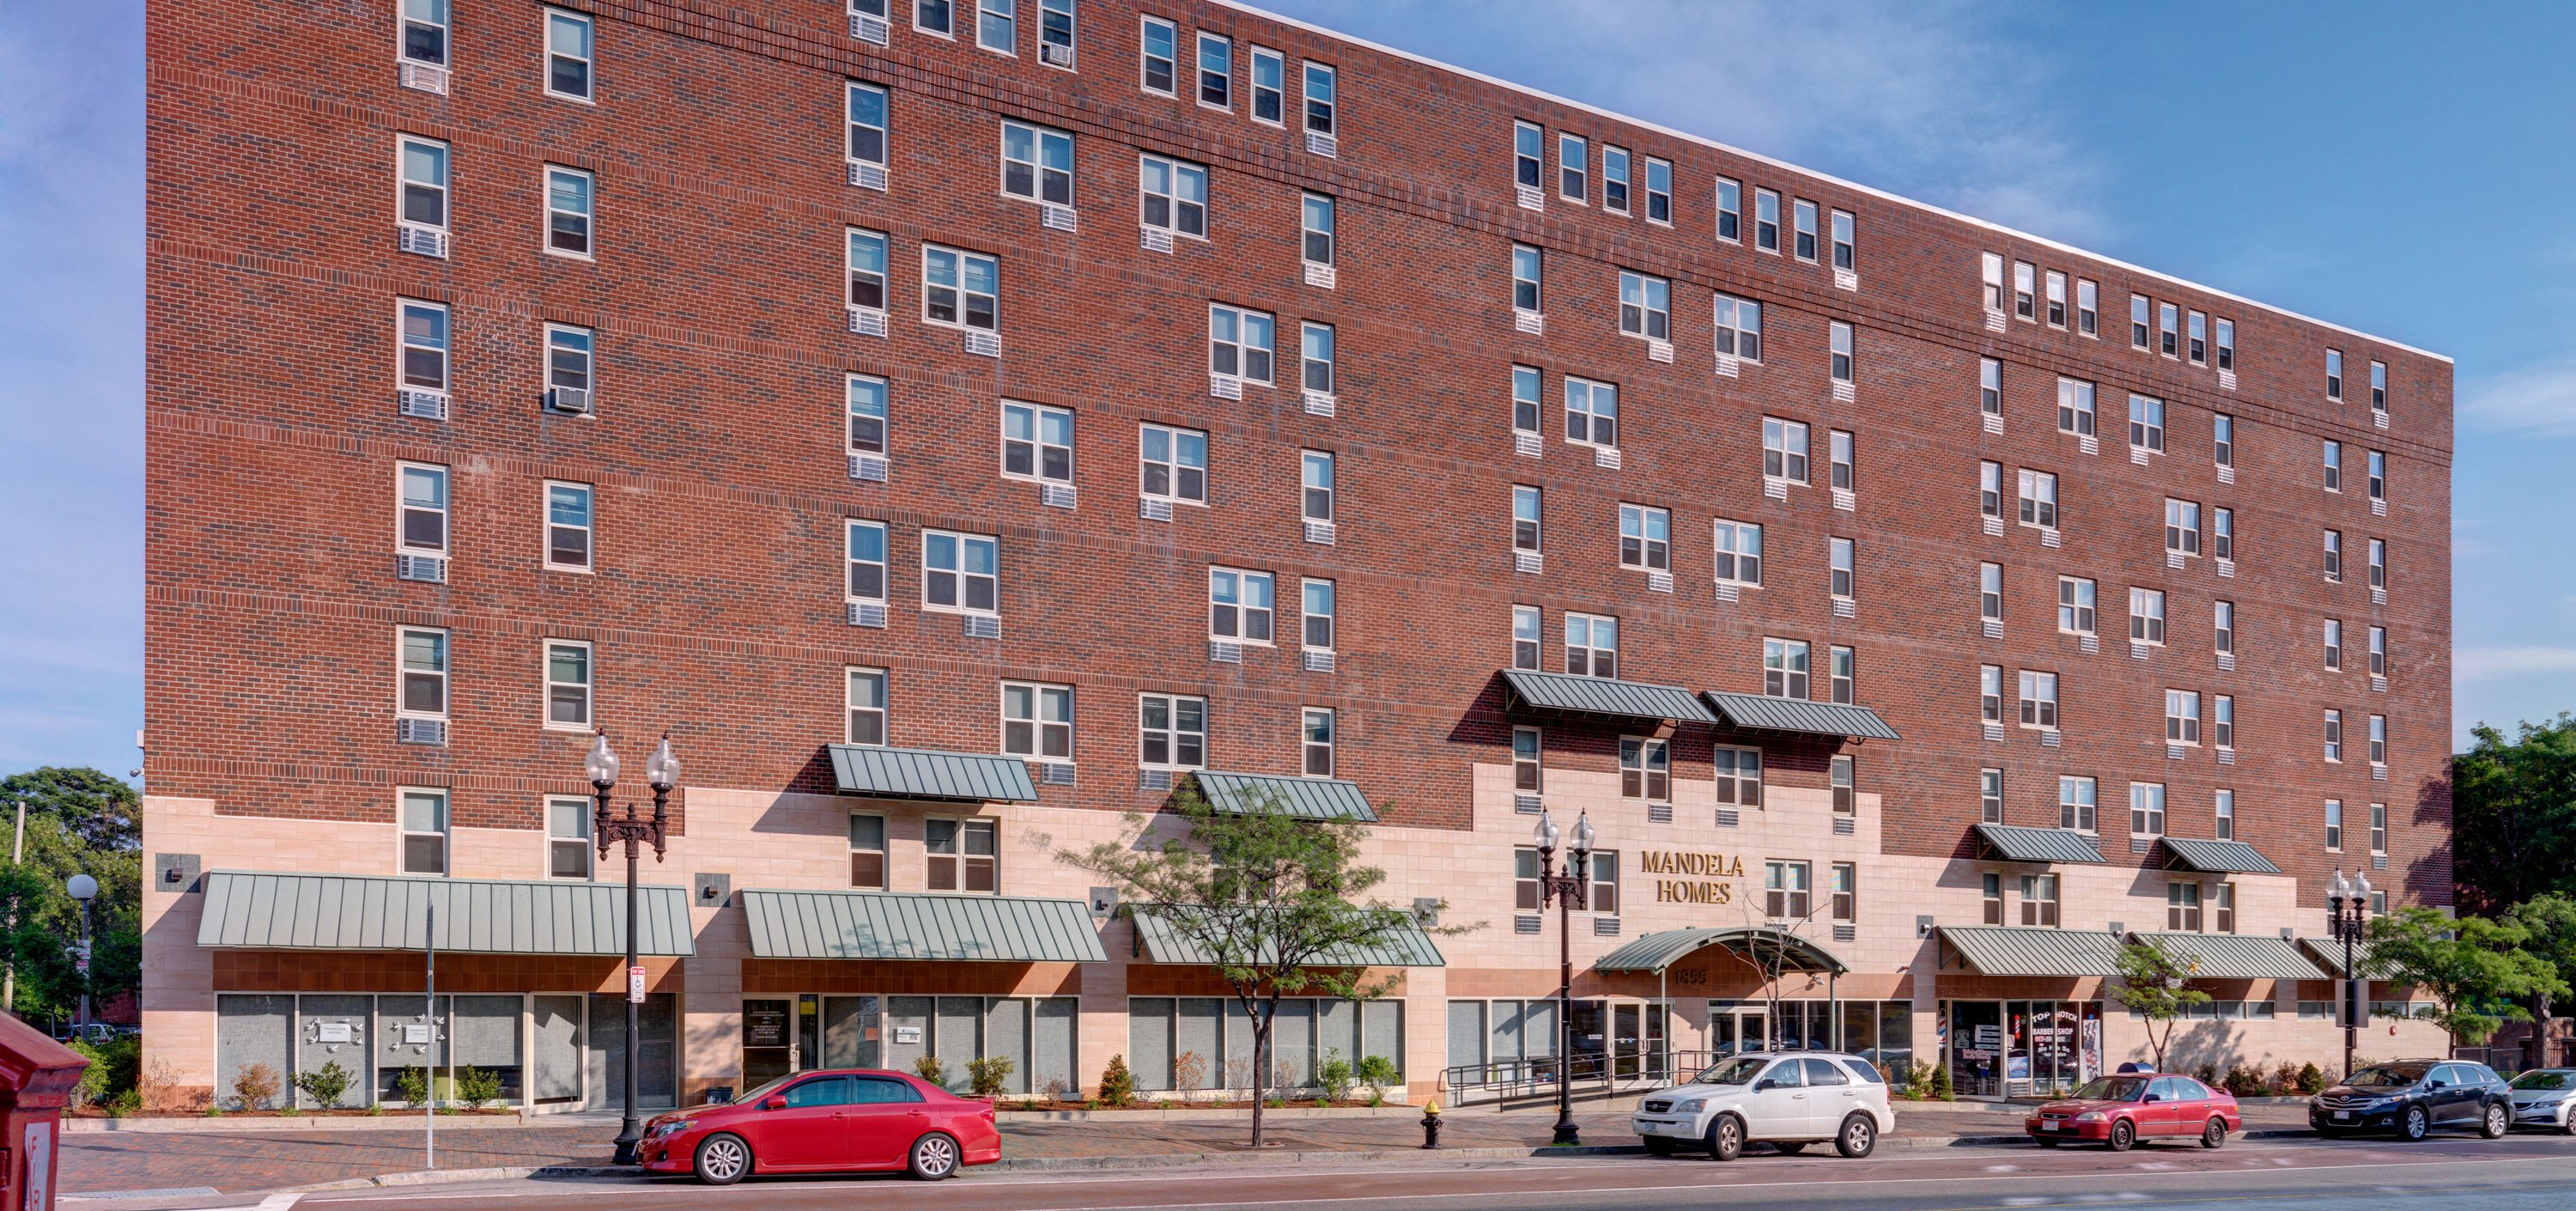 Mandela homes apartments in boston ma for Home builders in ma